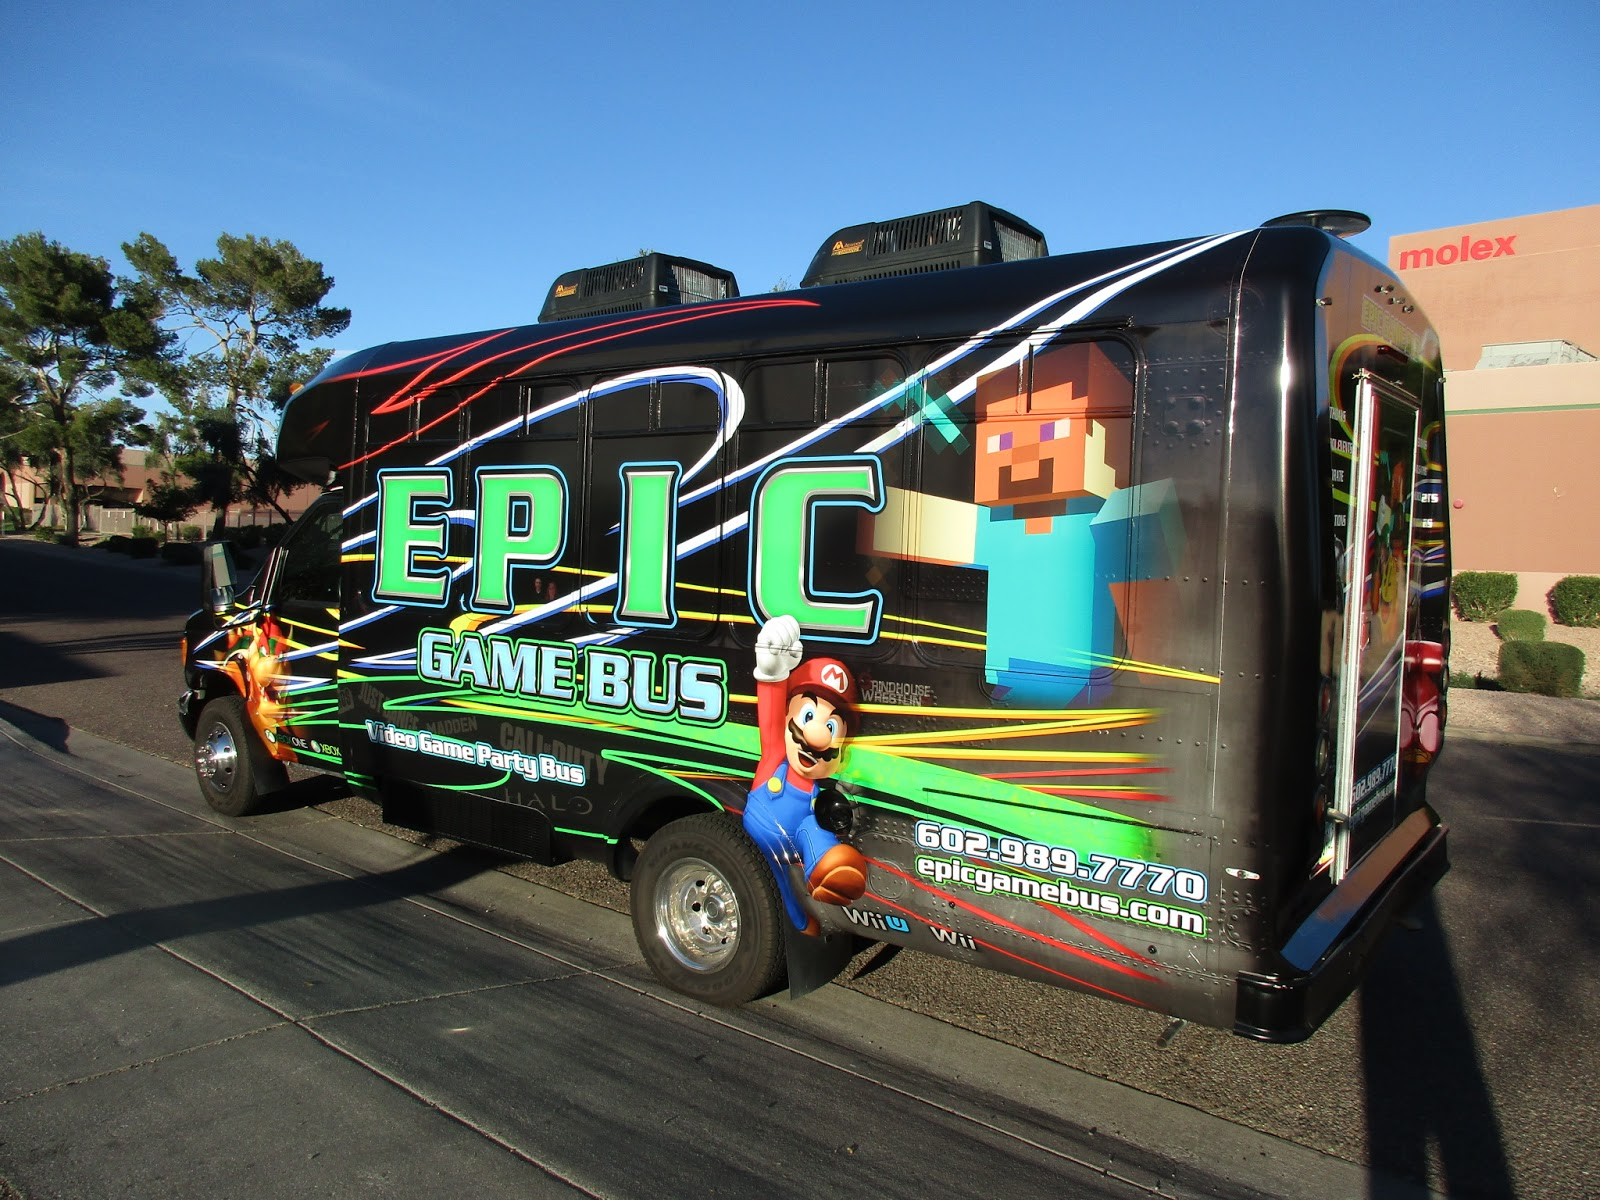 Epic Car Hire Vehicle Wraps And Screen Printing By Fast Trac Designs